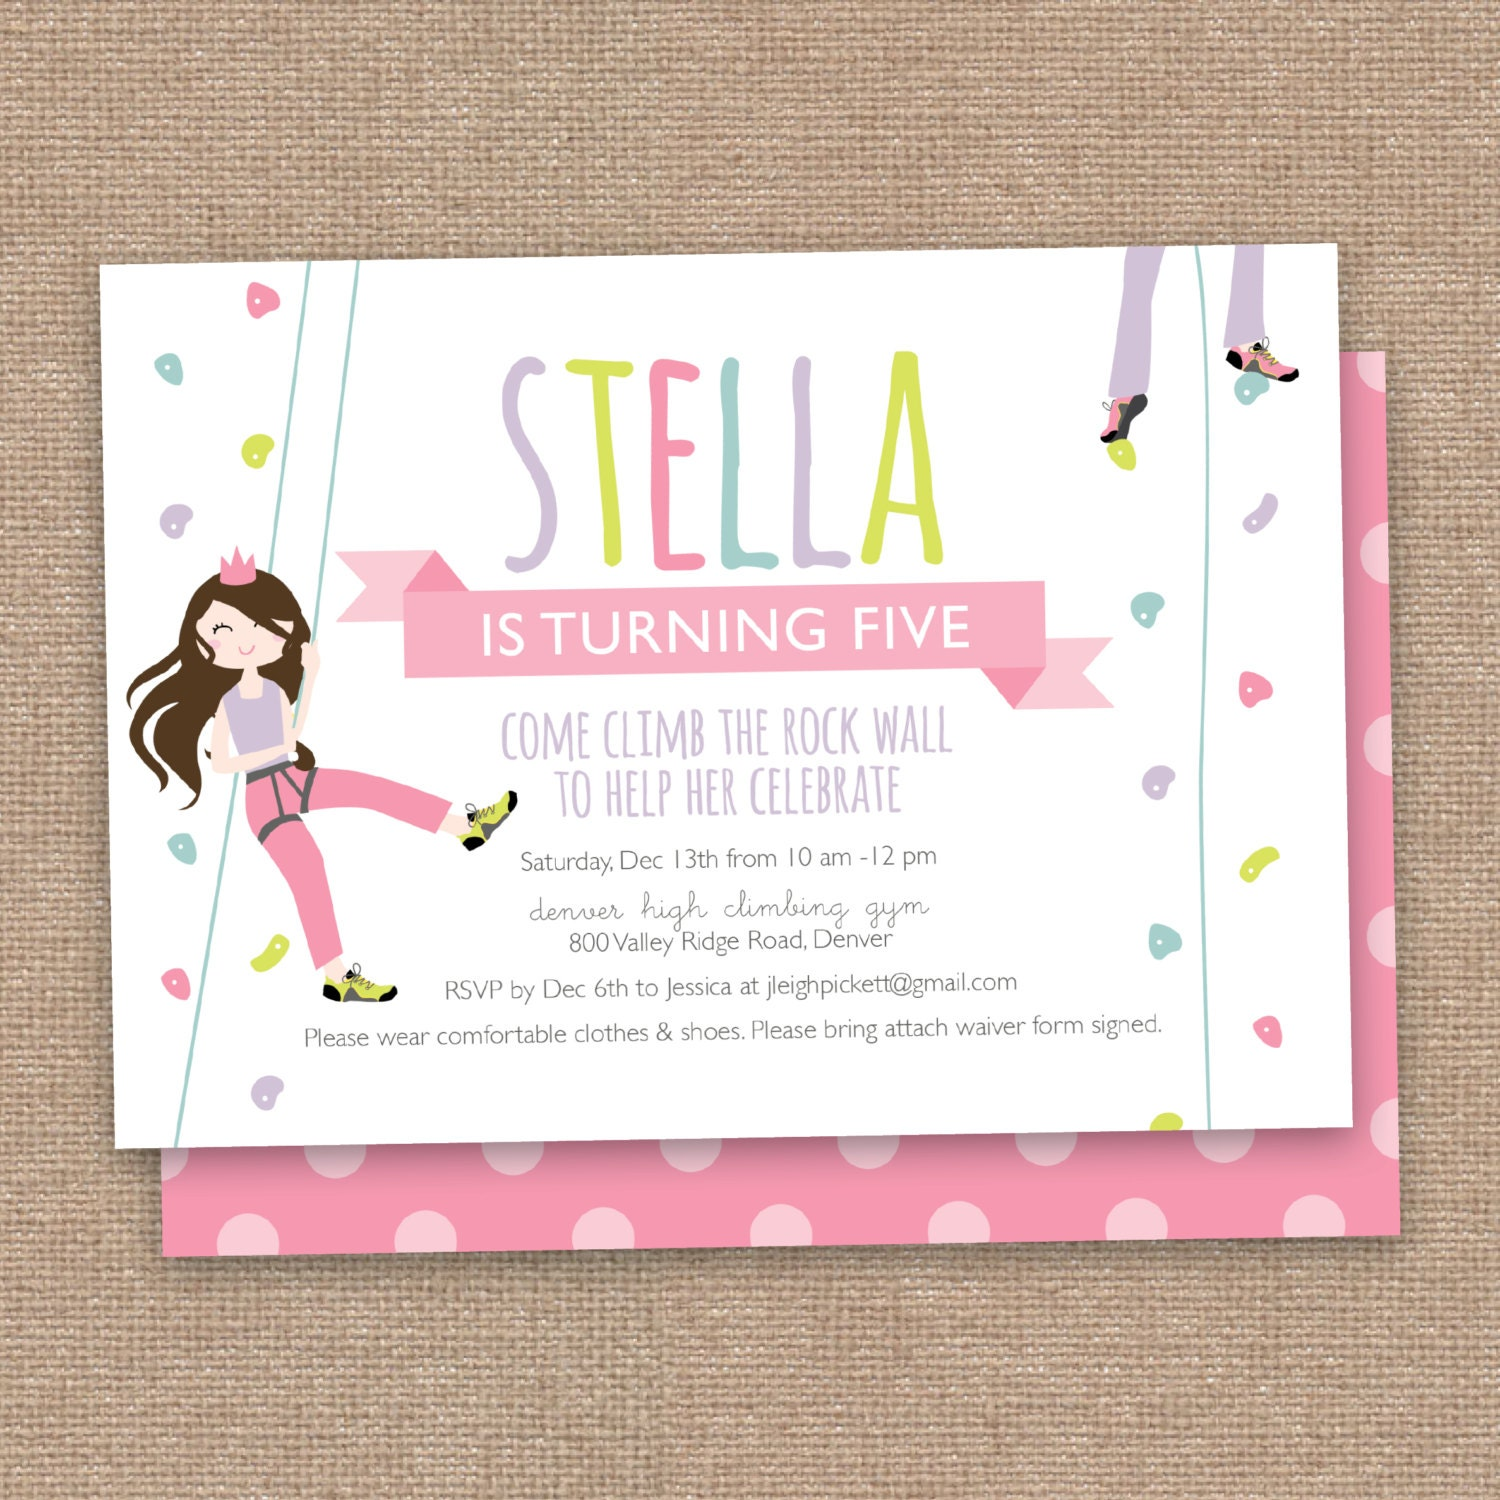 Similiar Rock Climbing Party Invitations Keywords